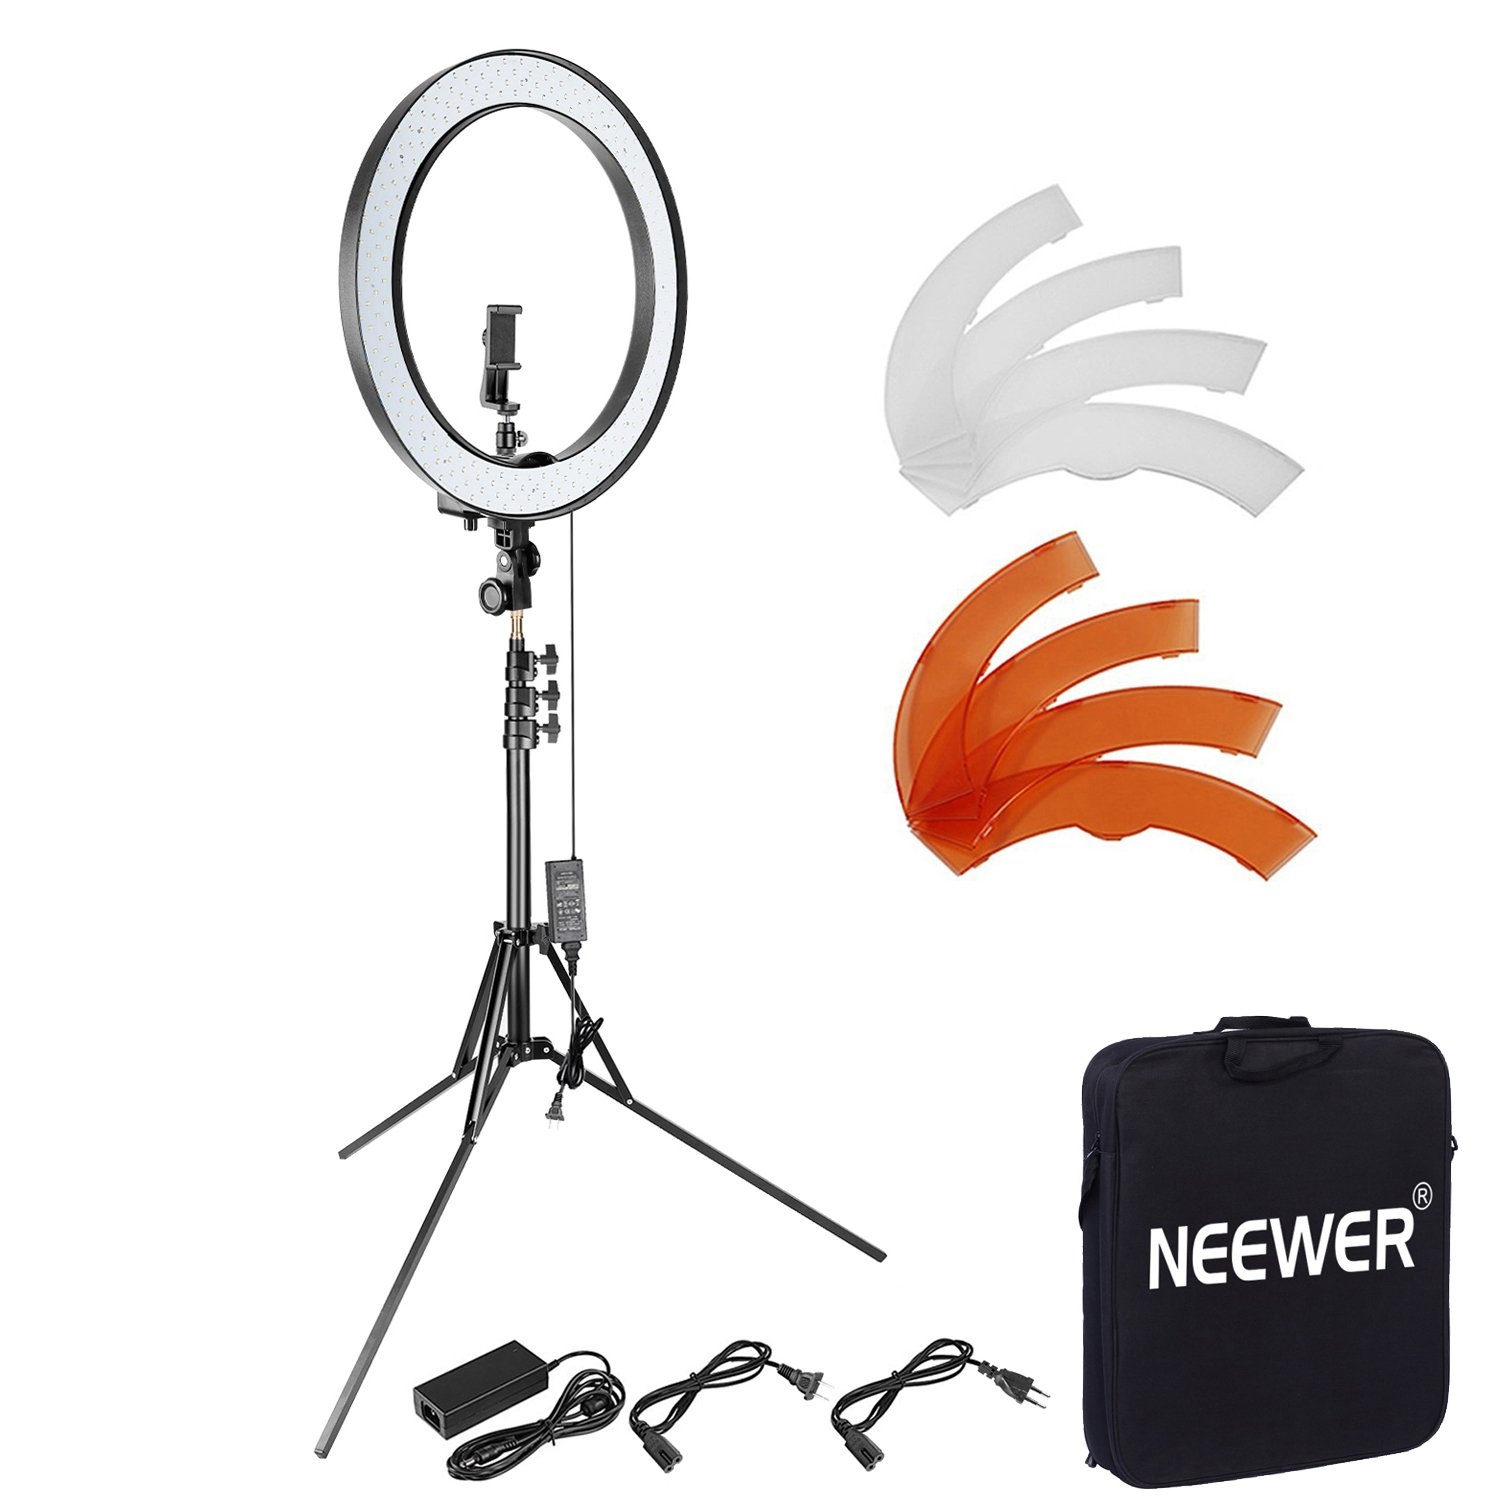 Neewer 18 inches 55W Dimmable LED Ring Light and Light Stand Lighting Kit - 240 LED Beads SMD Ring Light, 6.5 feet Adjustable Light Stand, Ball Head Hotshoe Adapter for Camera Photo Studio YouTube Video 90090974@@os1